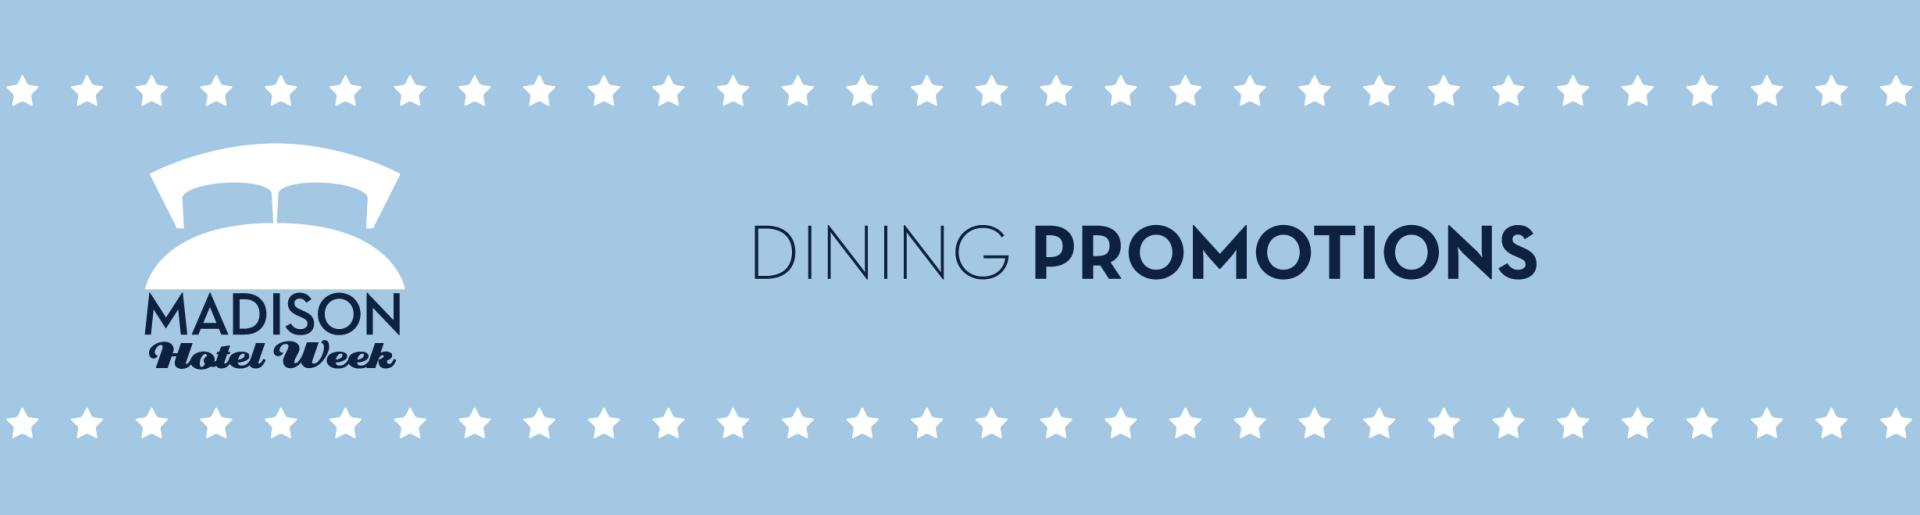 Madison Hotel Week 2017 Dining Promotions